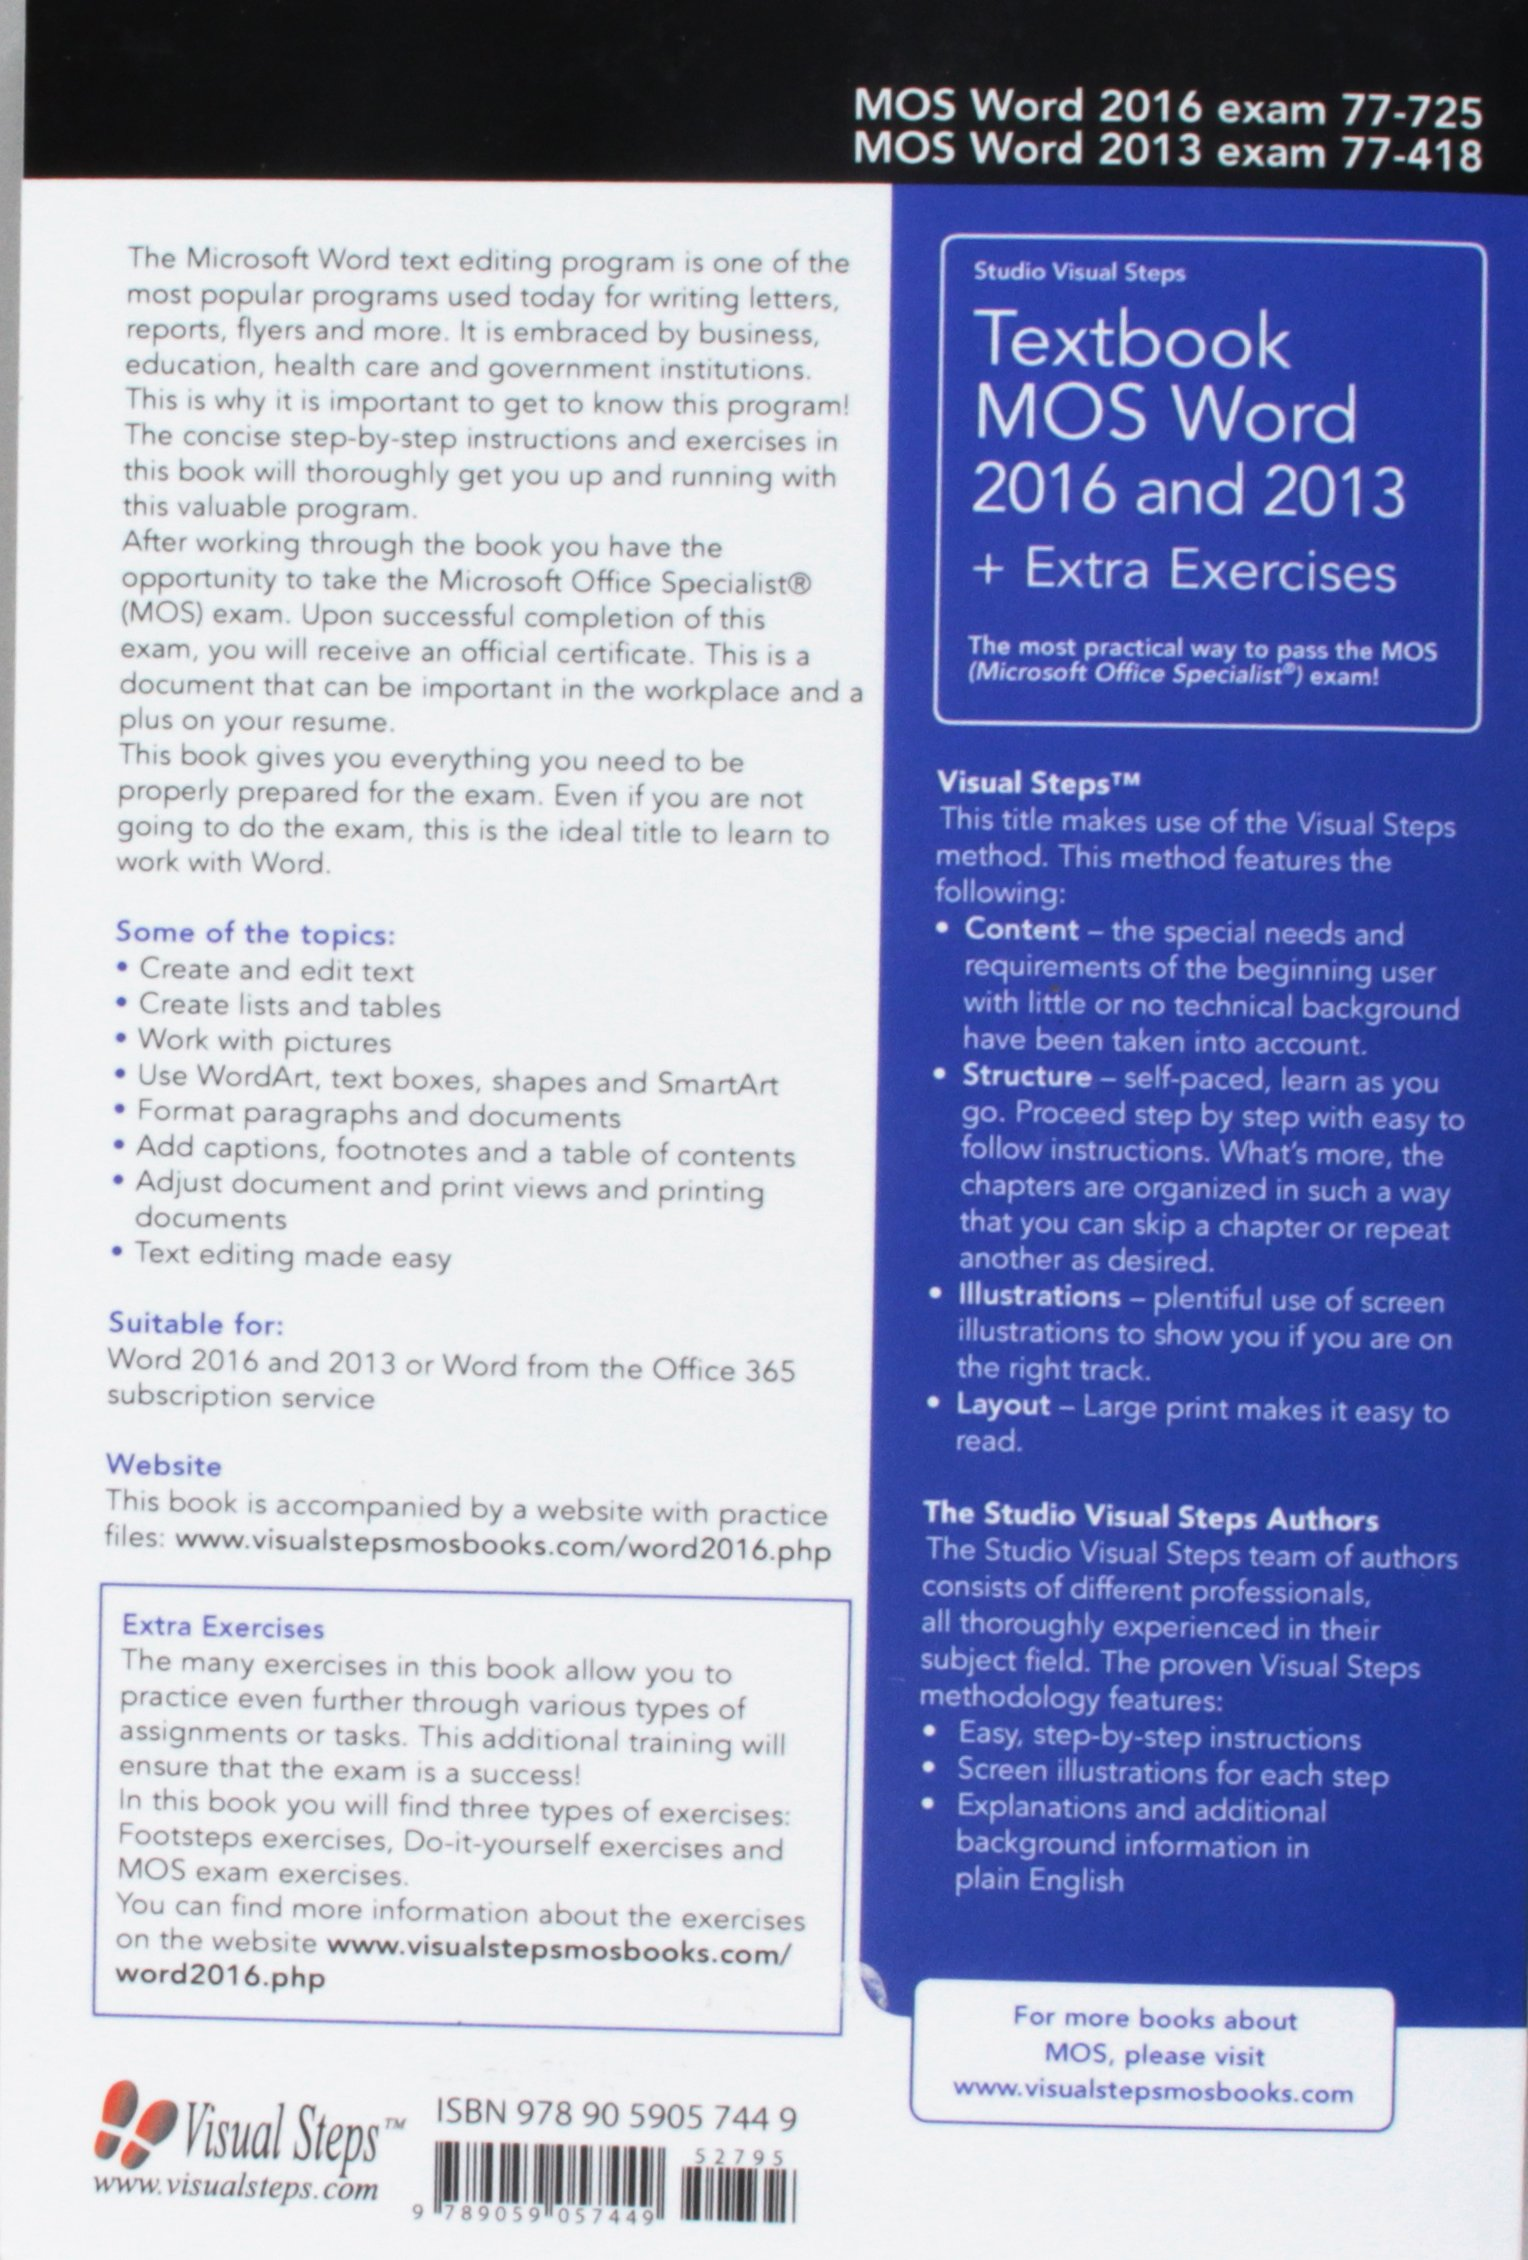 Textbook MOS Word 2016 and 2013 + Extra Exercises: The most